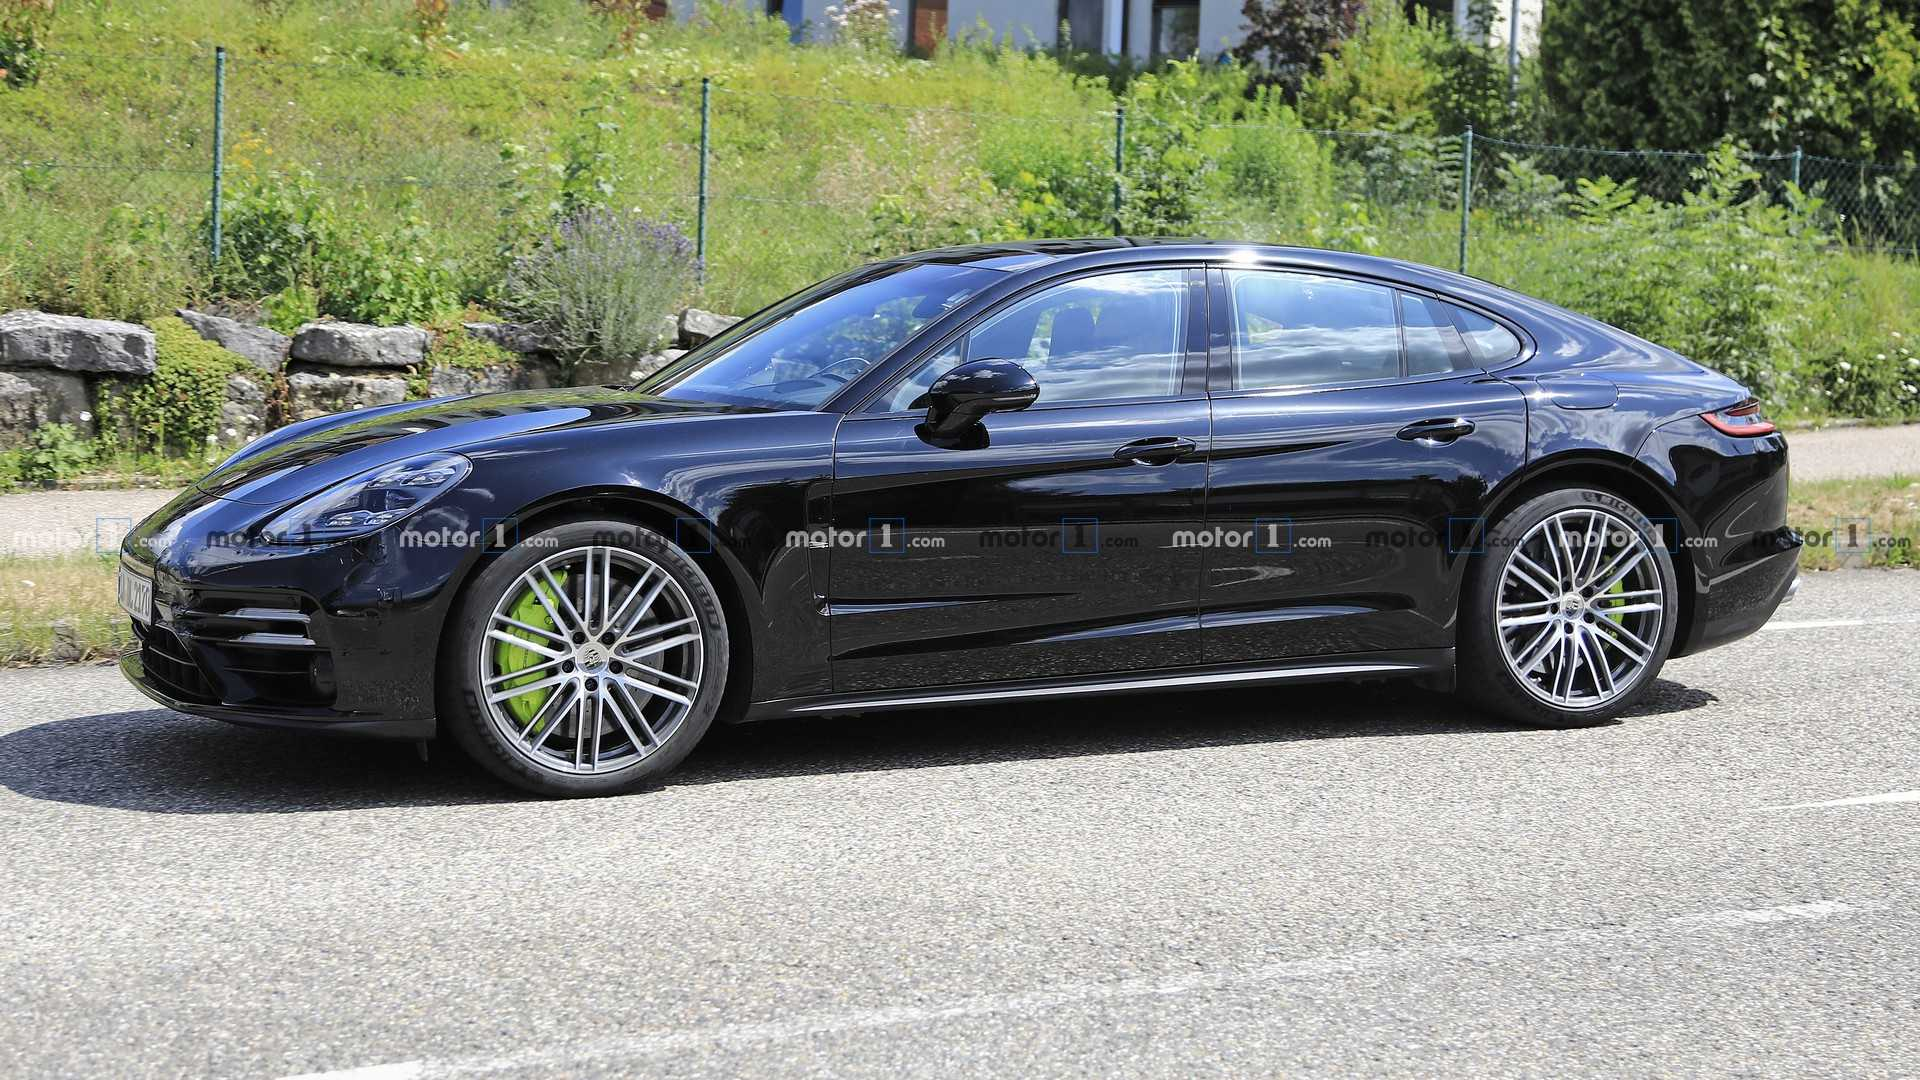 2021 Porsche Panamera Facelift Caught With Sneaky Camouflage